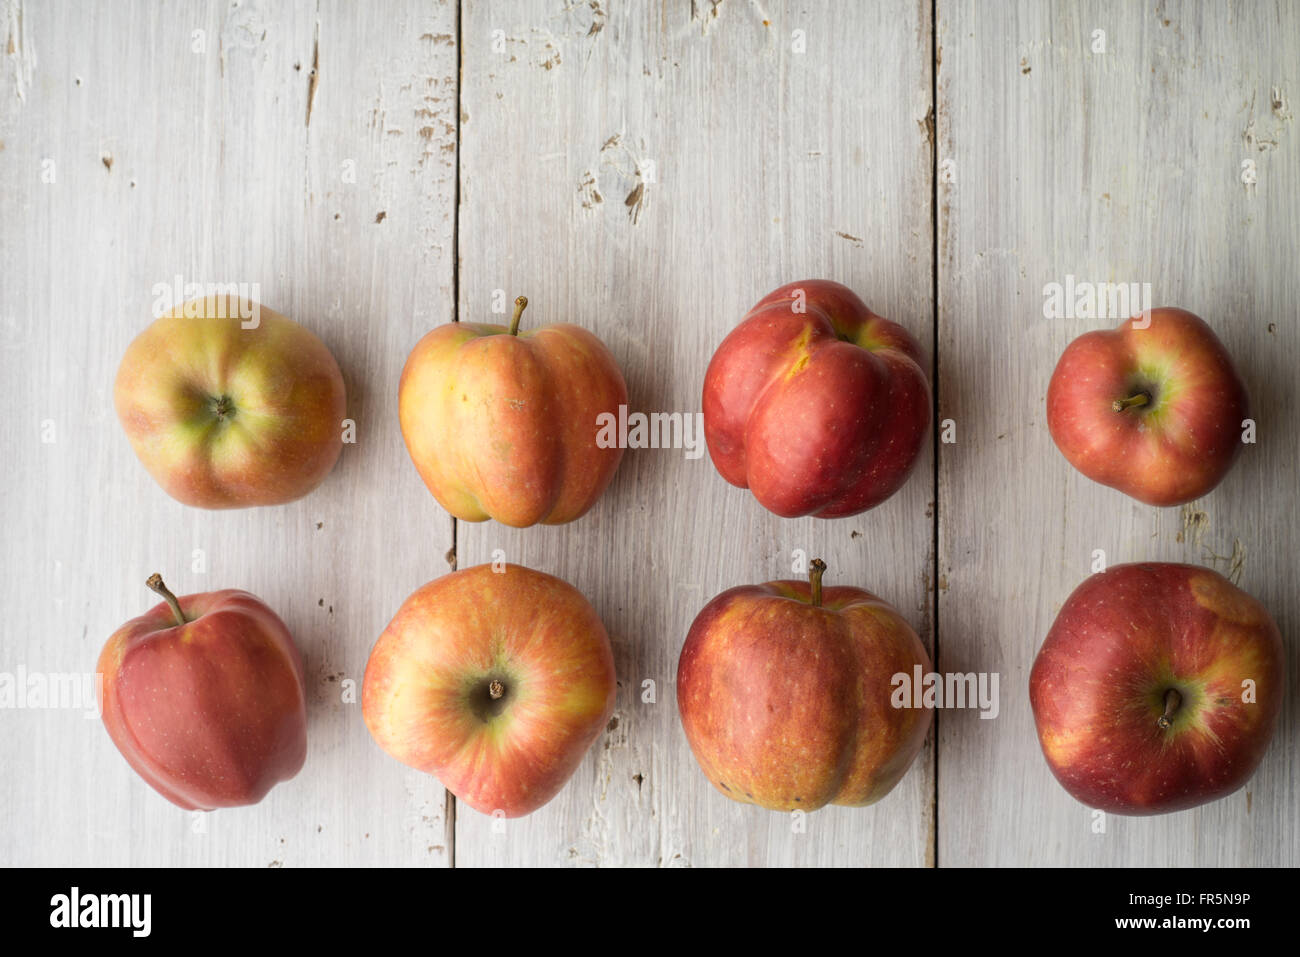 Summer apples on a white wooden table horizontal - Stock Image